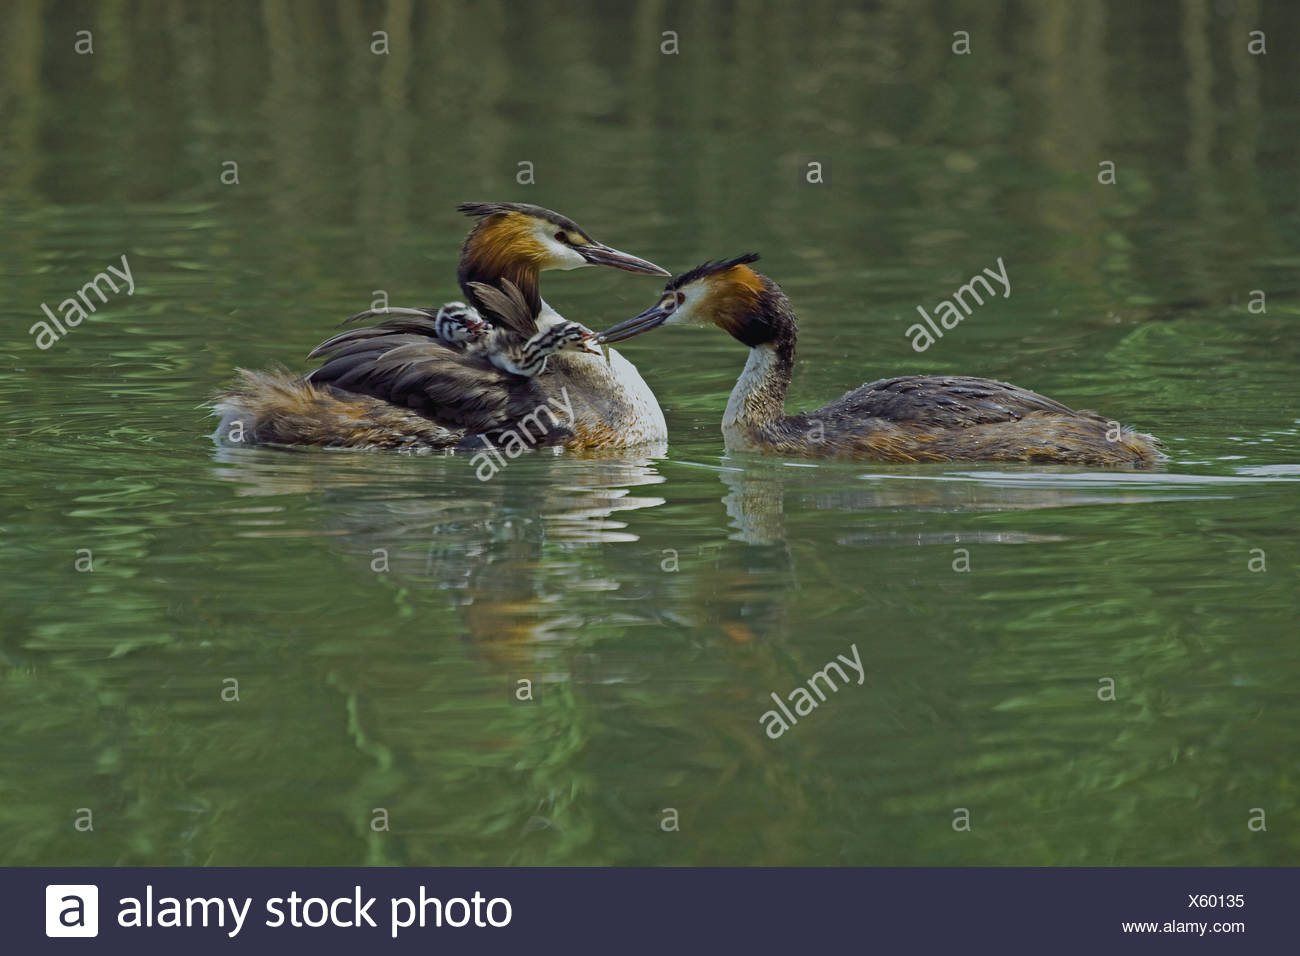 Crested Grebe pair with juveniles - Stock Image